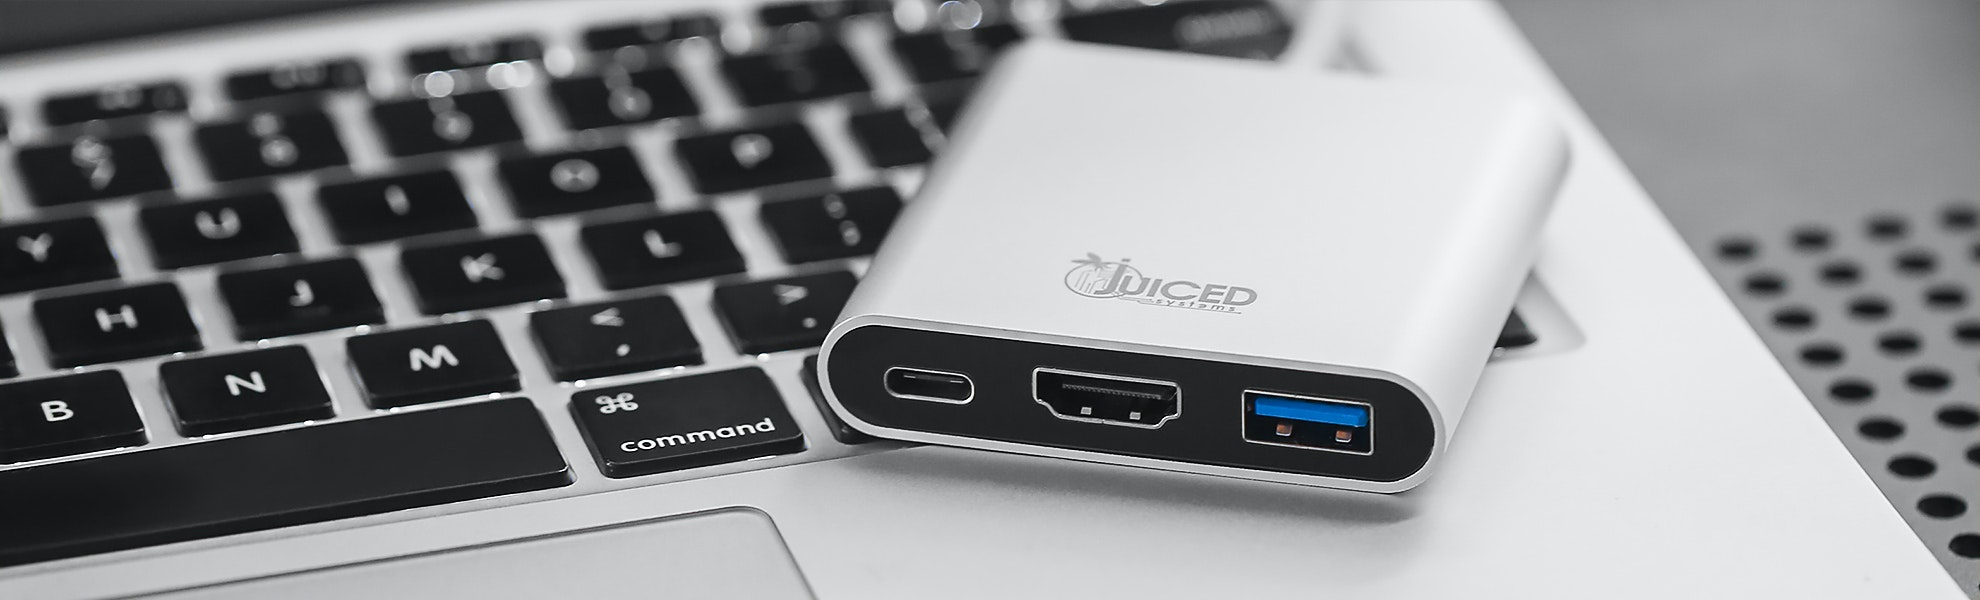 Juiced USB-C Multiport HDMI Display Adapter